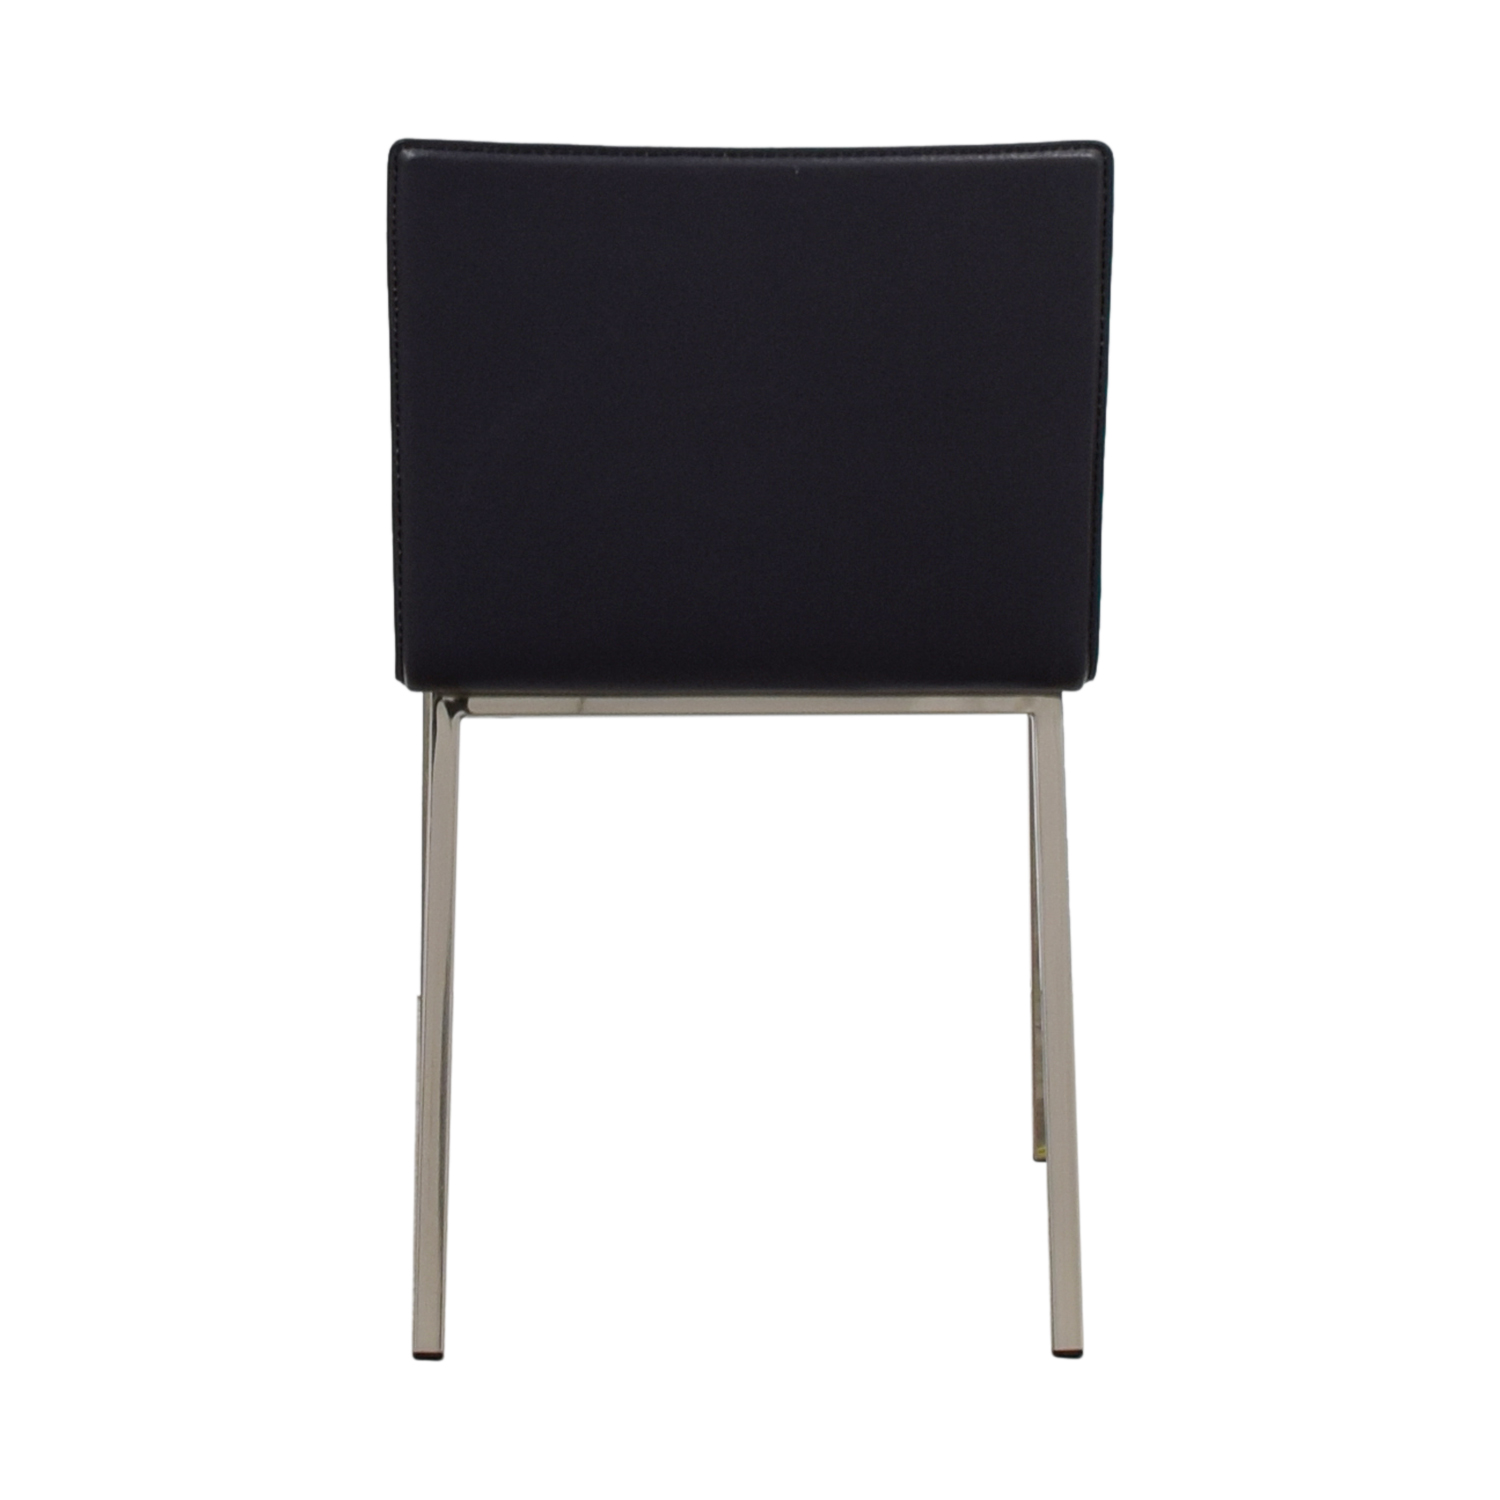 Grey Desk Chair nj